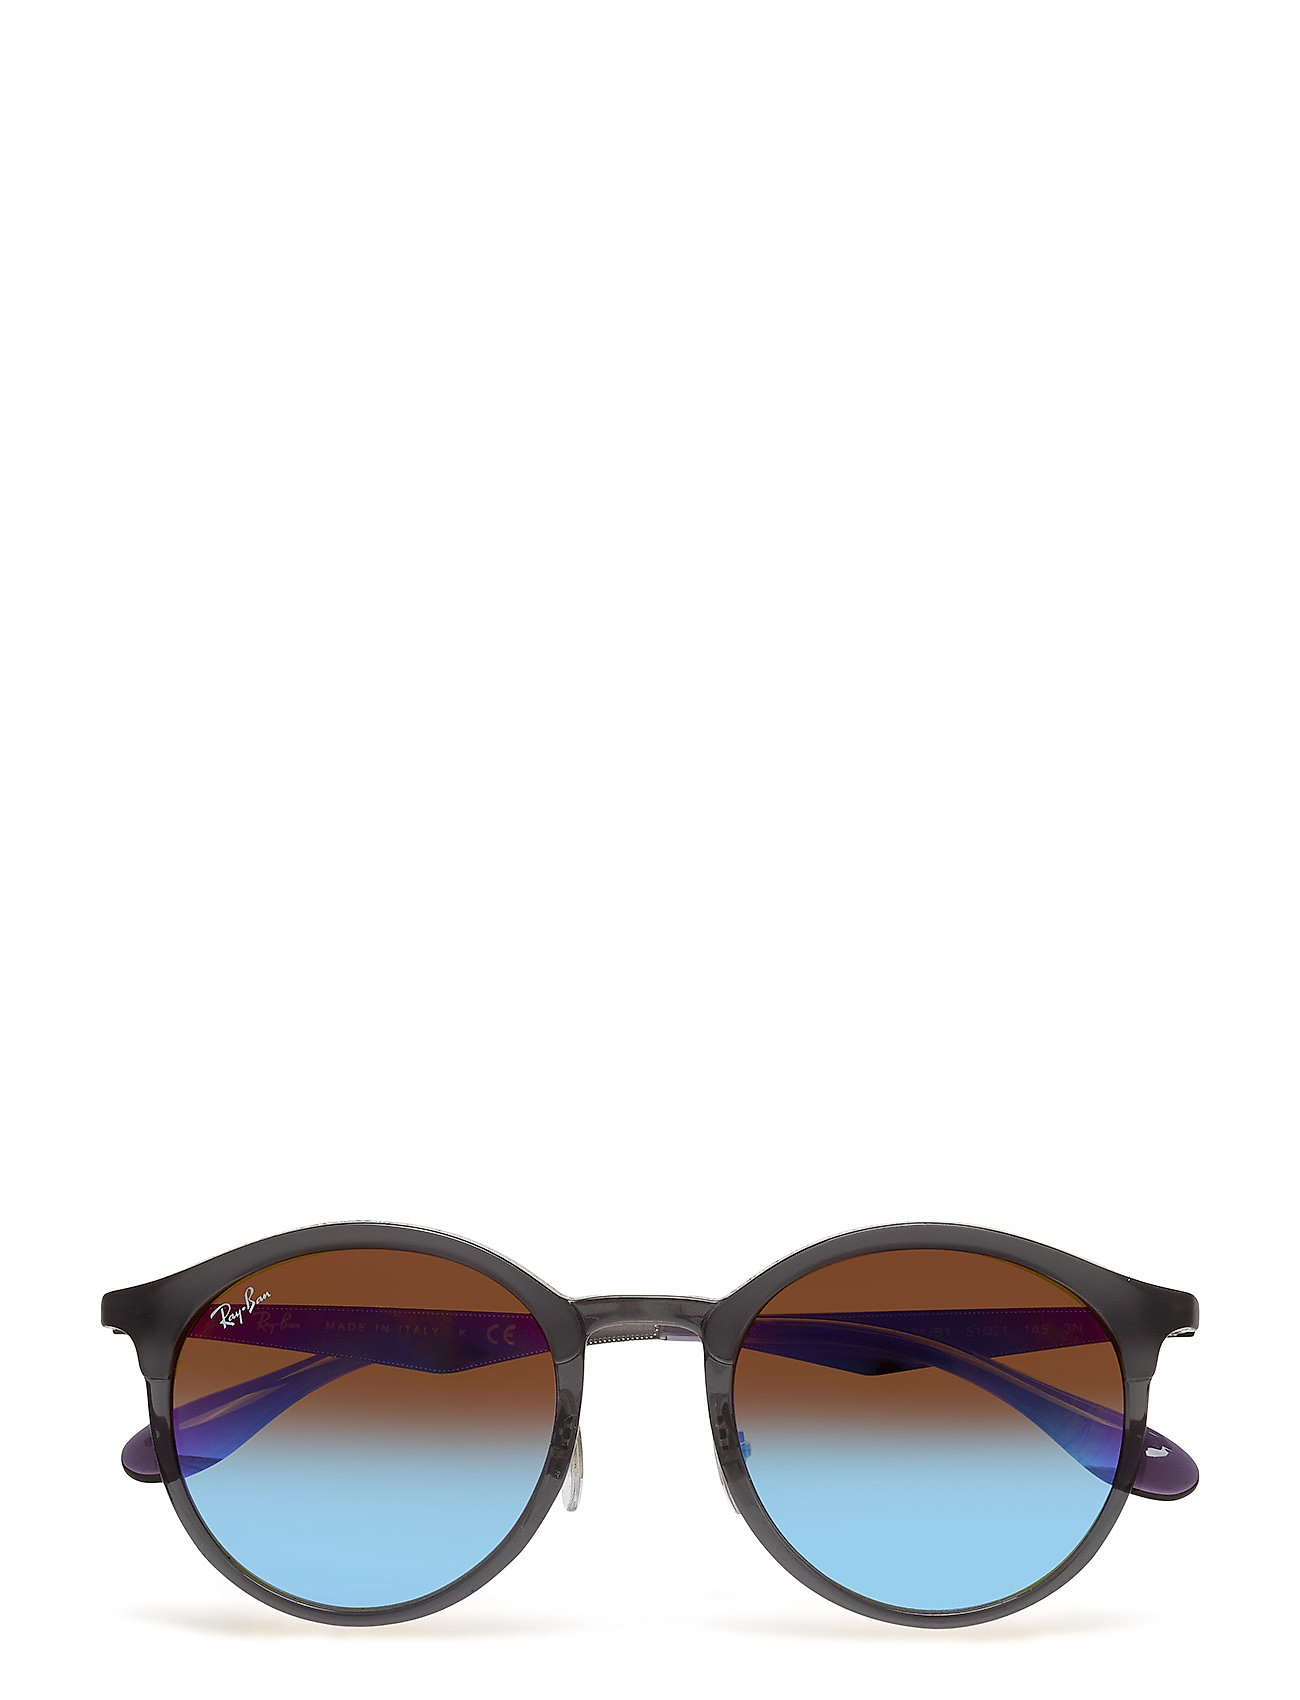 Image of Not Classified Solbriller Grå Ray-Ban (3269497355)